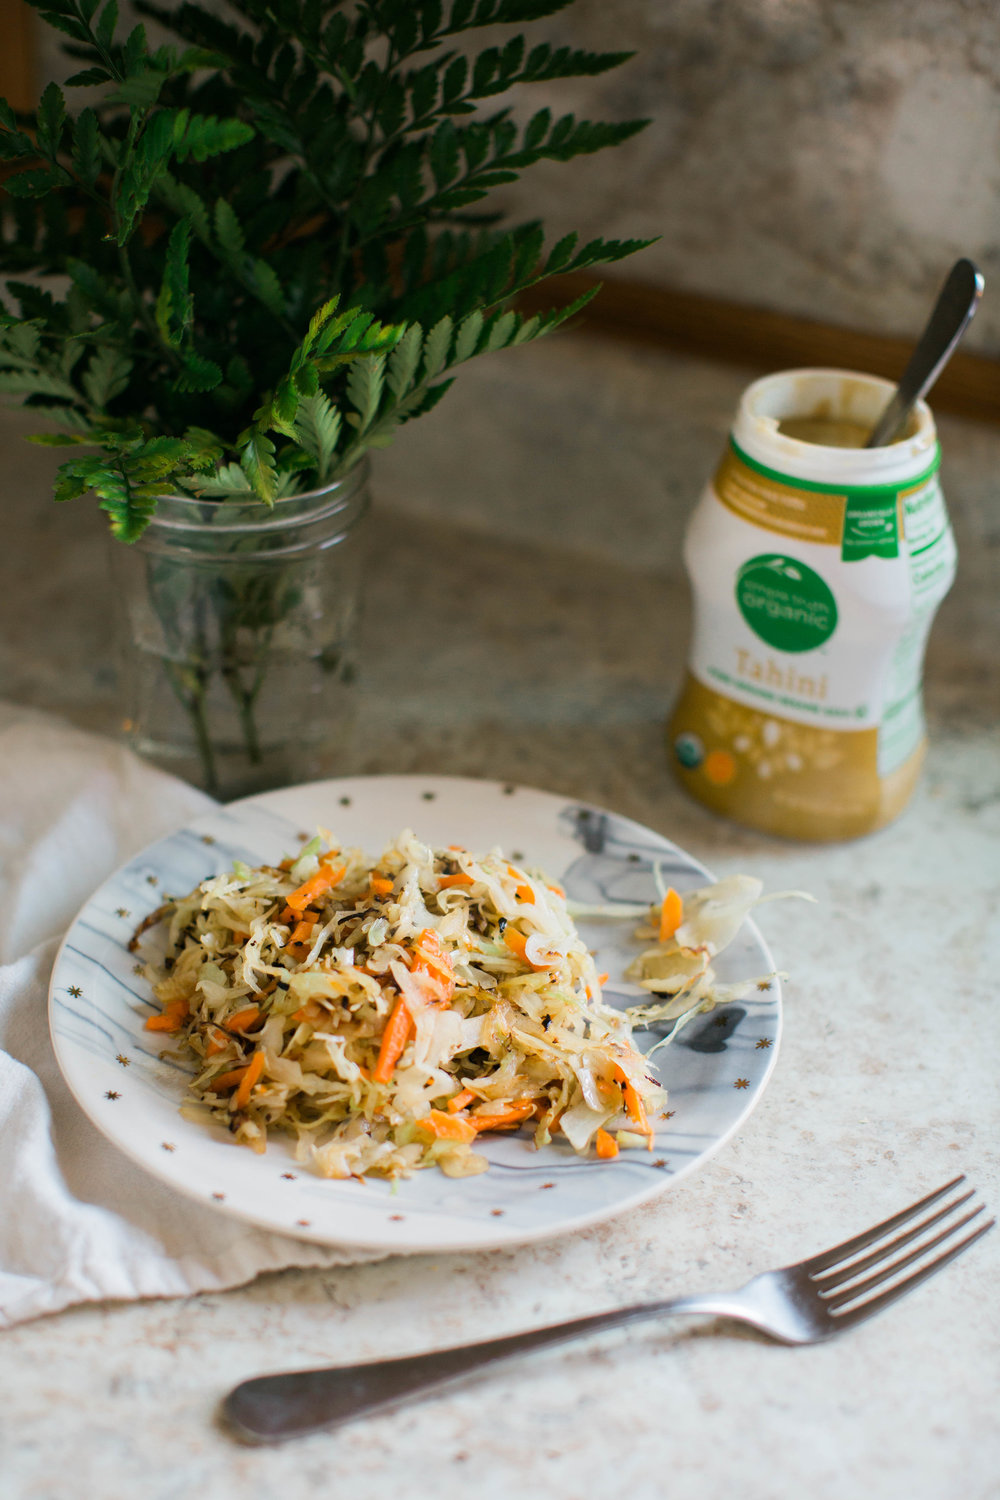 jennahazelphotography-cabbage-with-tahini-6504.jpg